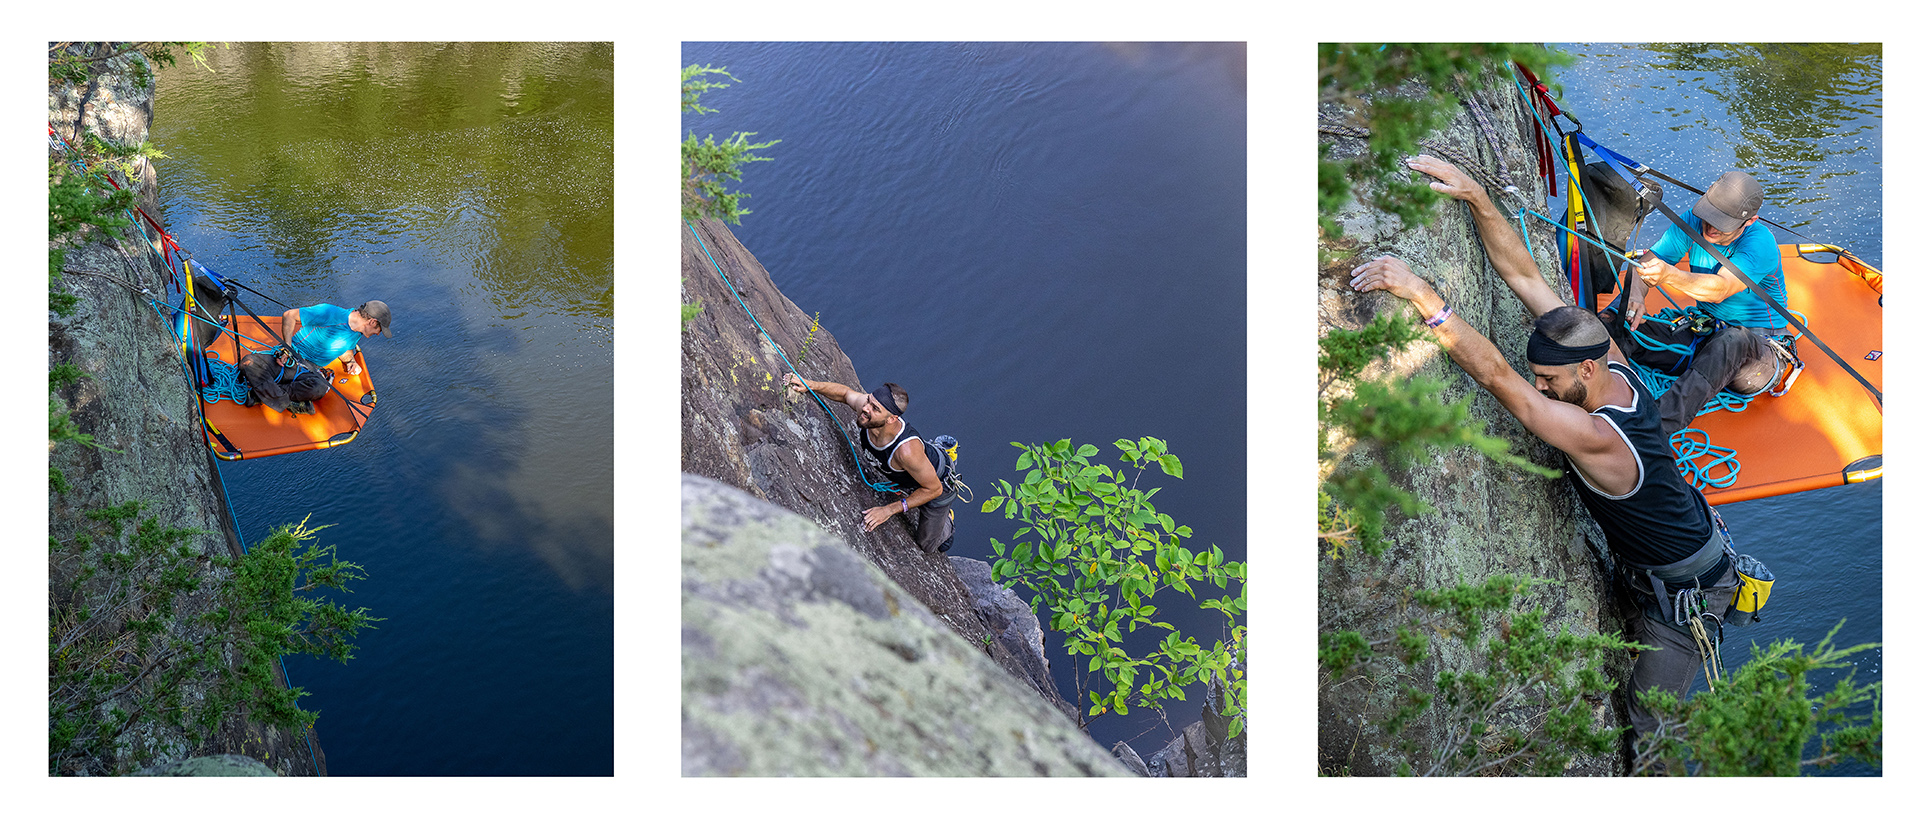 Pat Boudreau - Climbing on the St Croix.